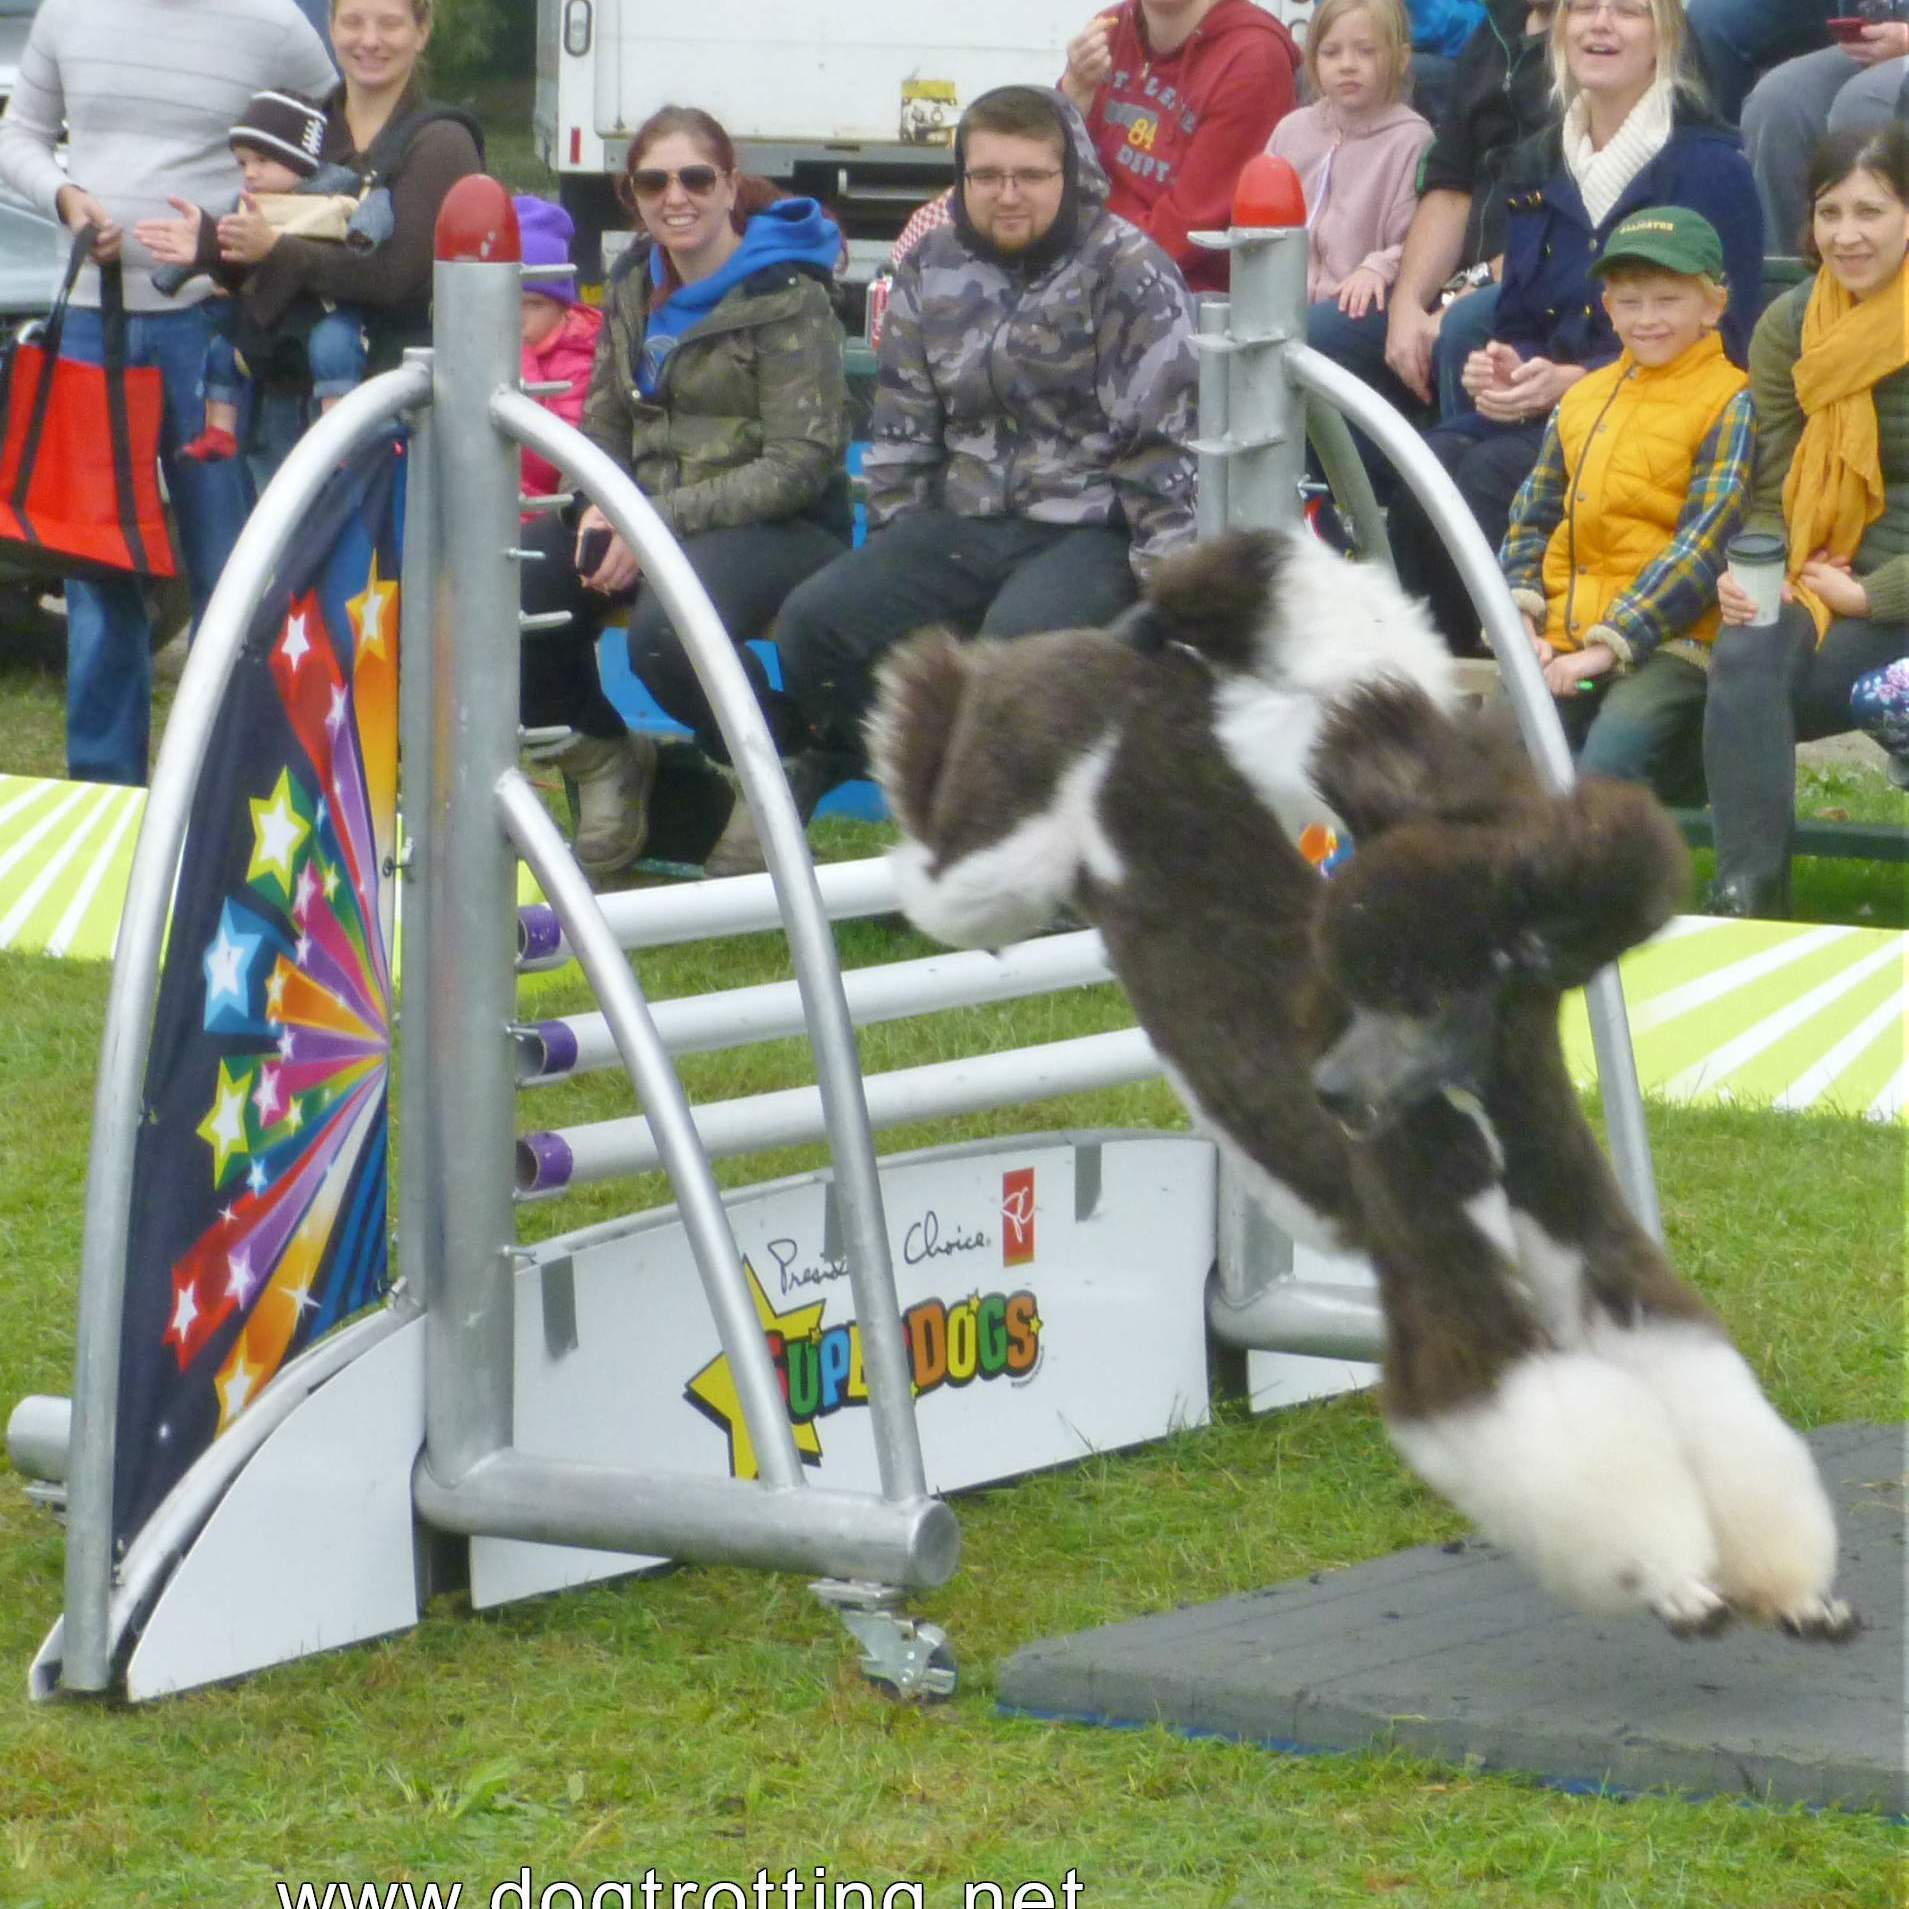 President's Choice SuperDogs brown and white poodle jumping hurdles